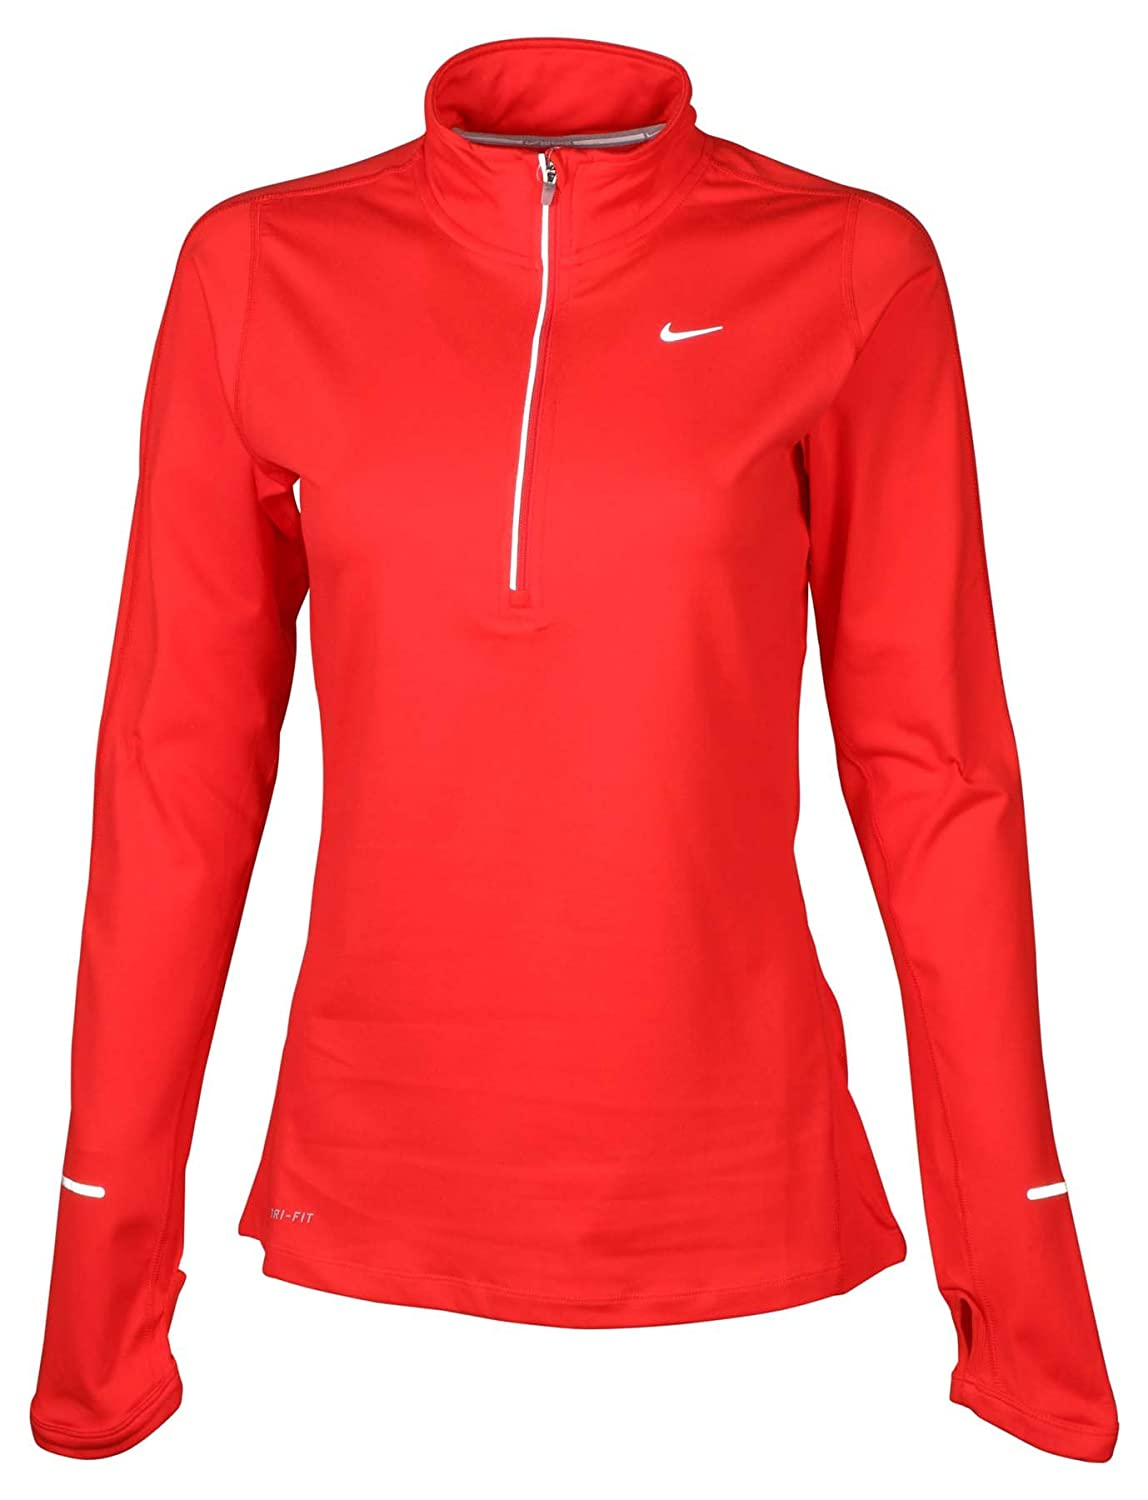 Amazon.com: Nike Element – Chaqueta para mujer con media ...